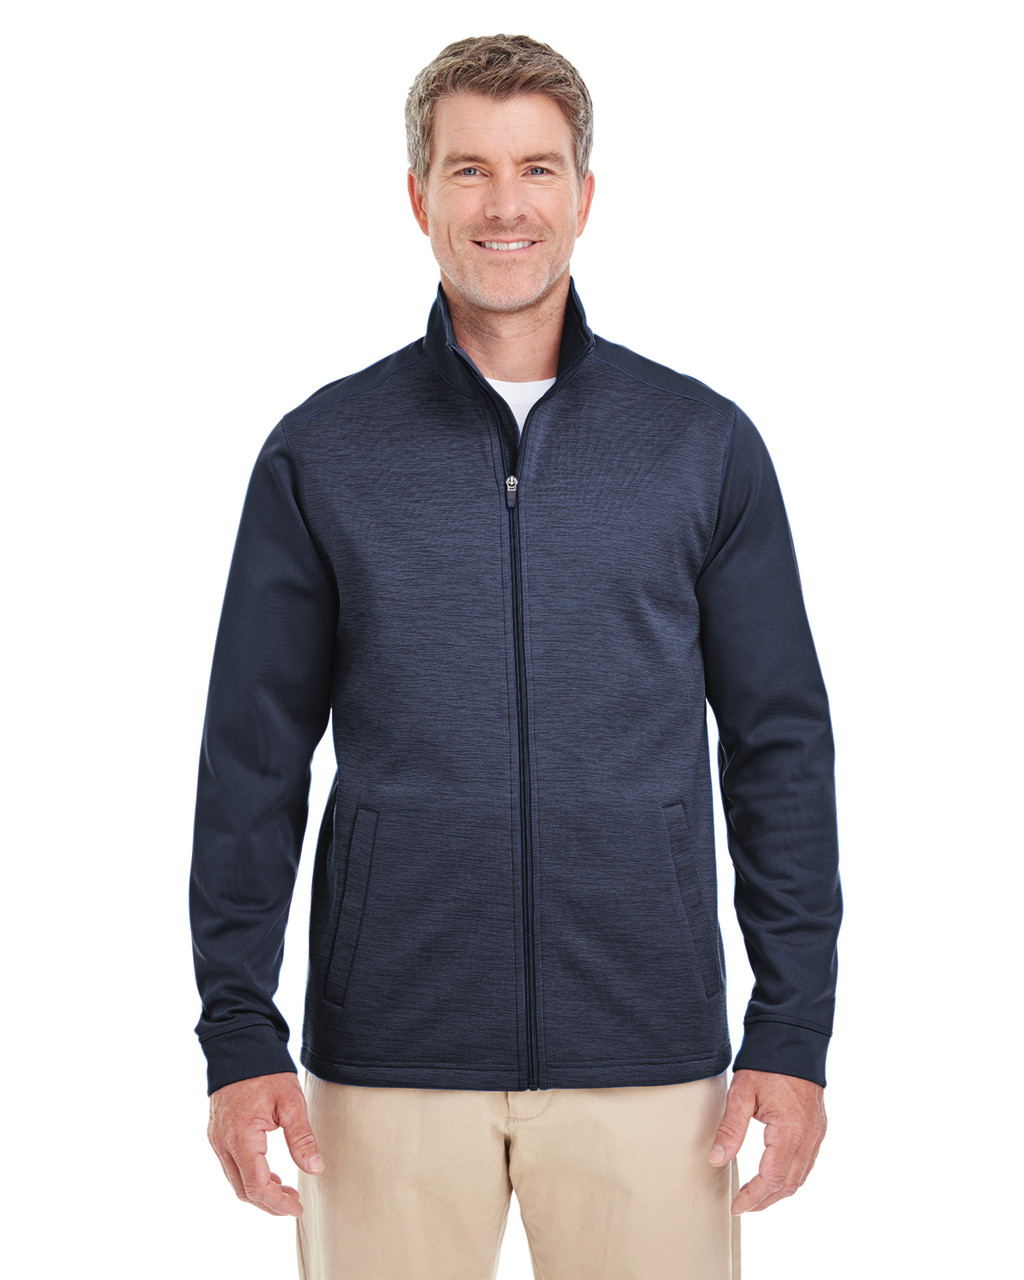 Navy / Navy Heather - DG796 Devon & Jones Men's Newbury Colorblock Mélange Fleece Full-Zip Sweater